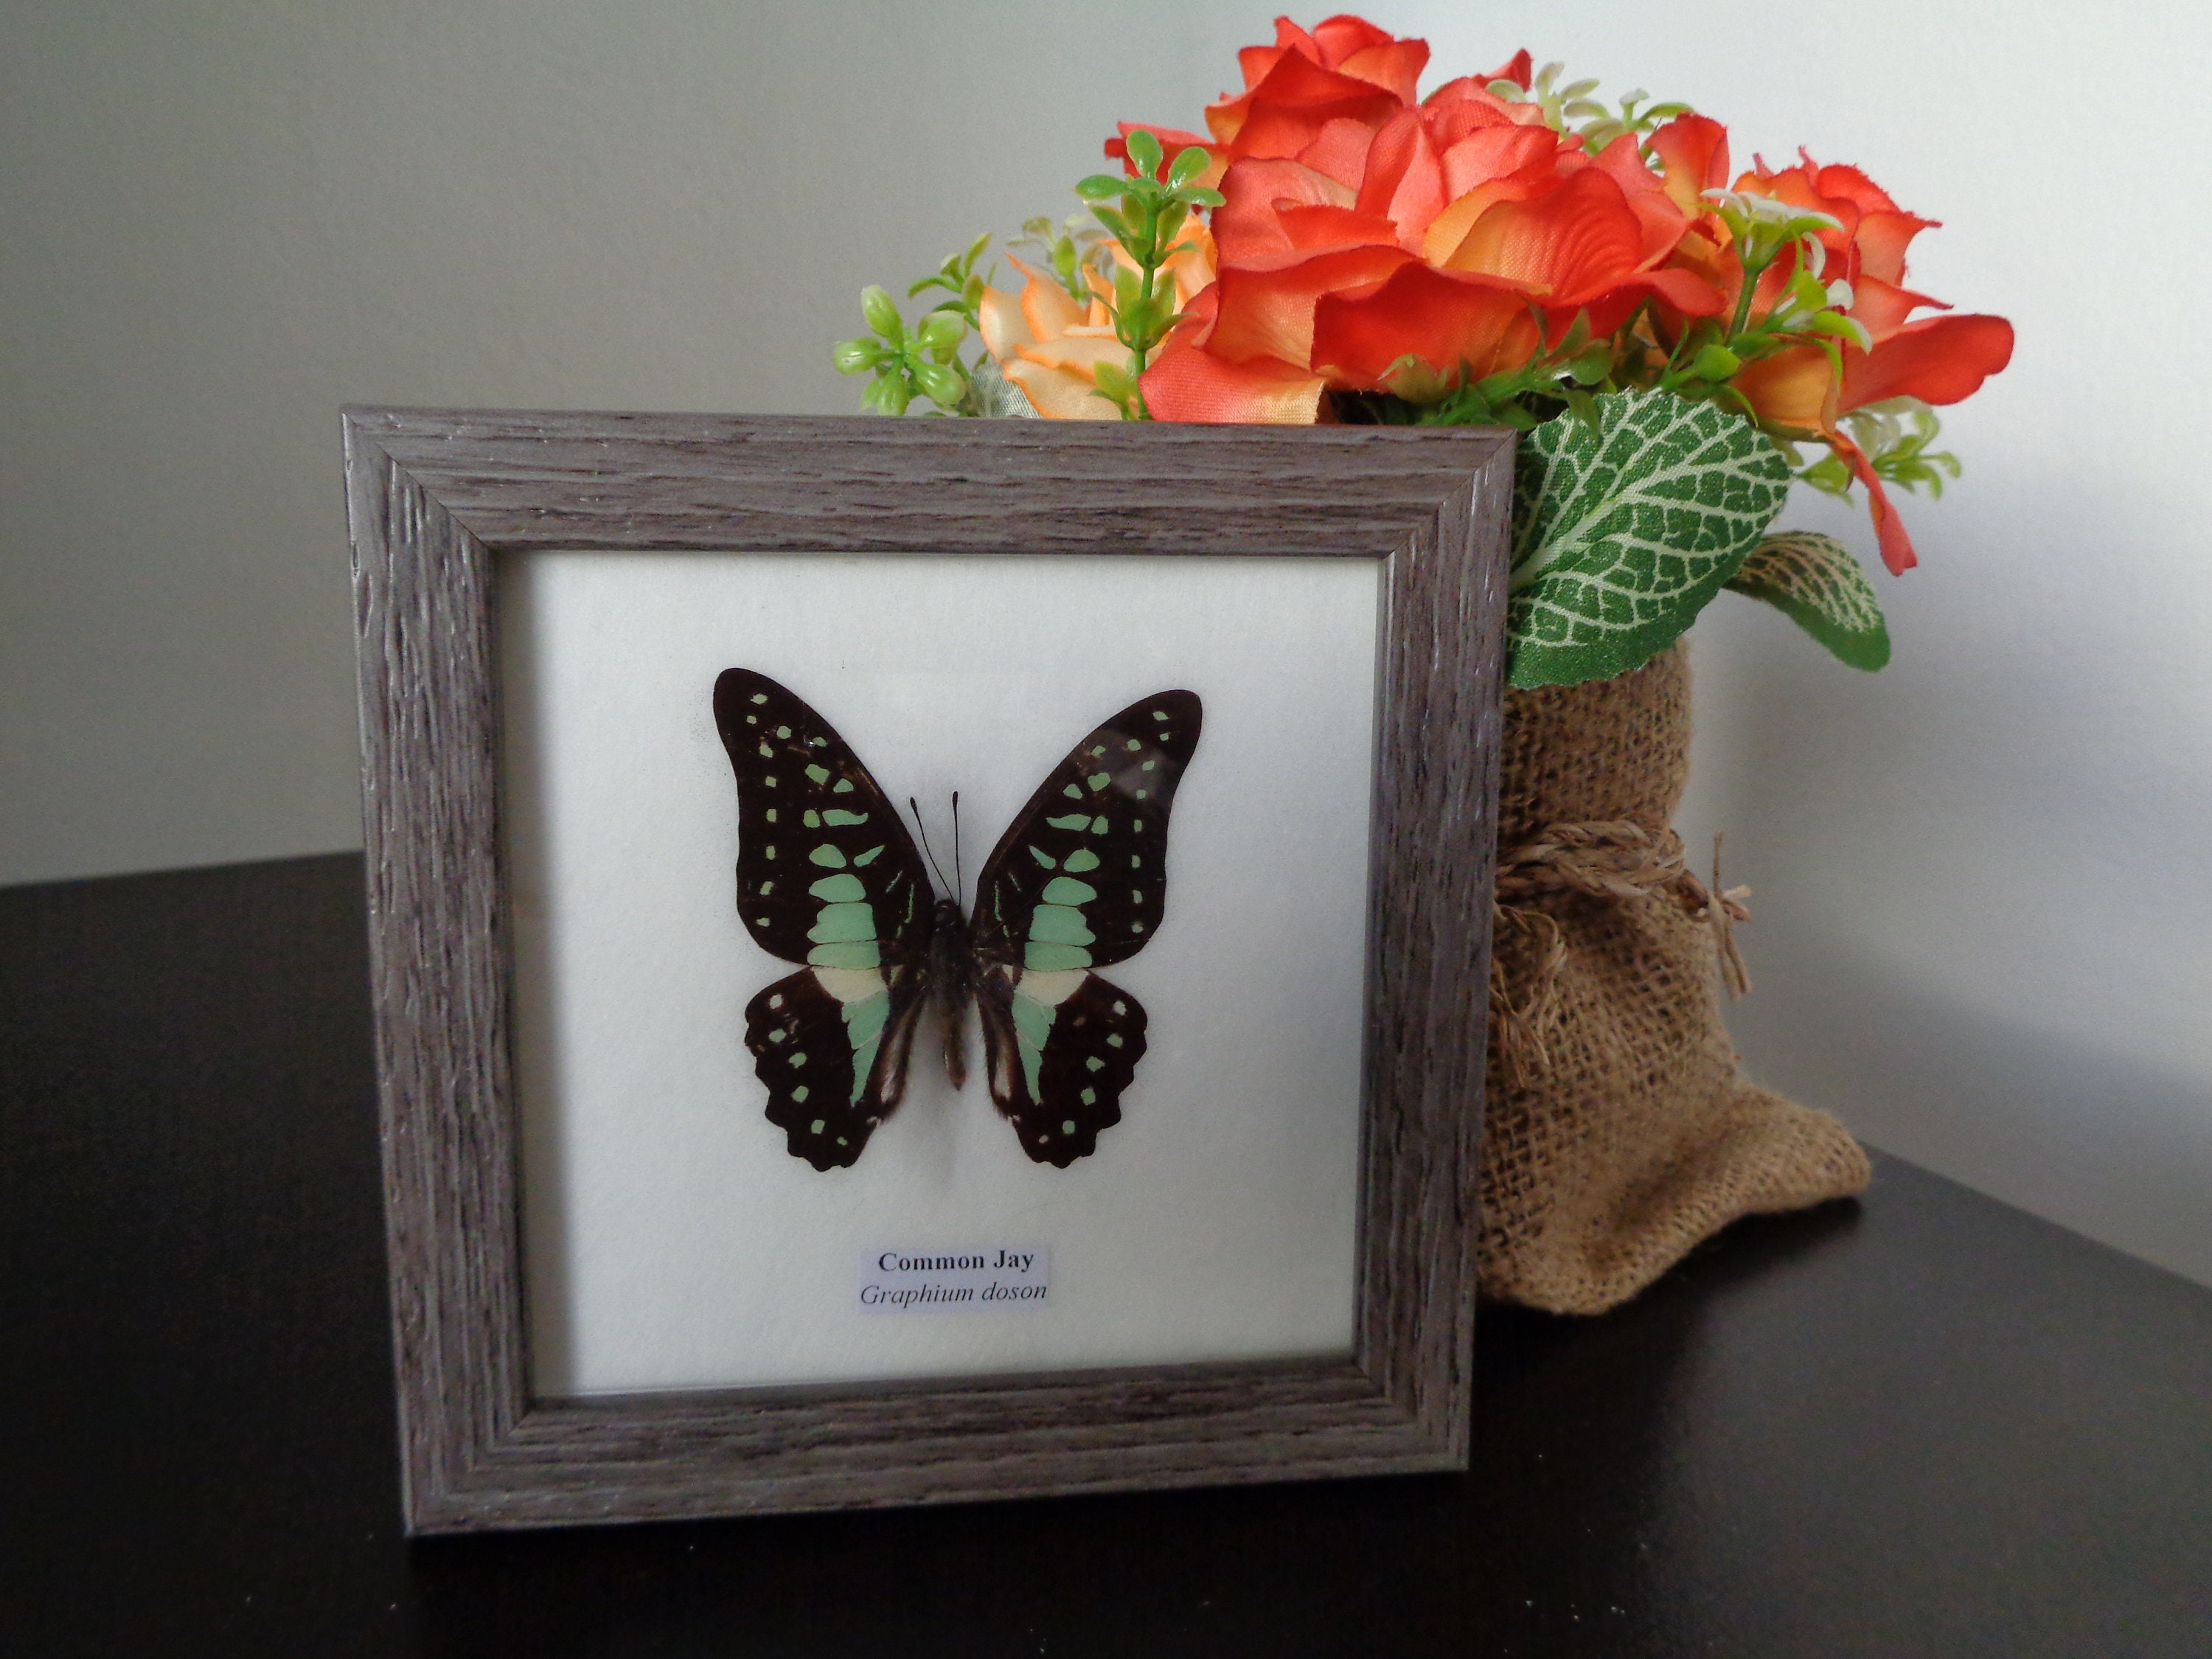 Lepidoptera Real Butterfly Spot Swordtail Framed Wall Display Taxidermy